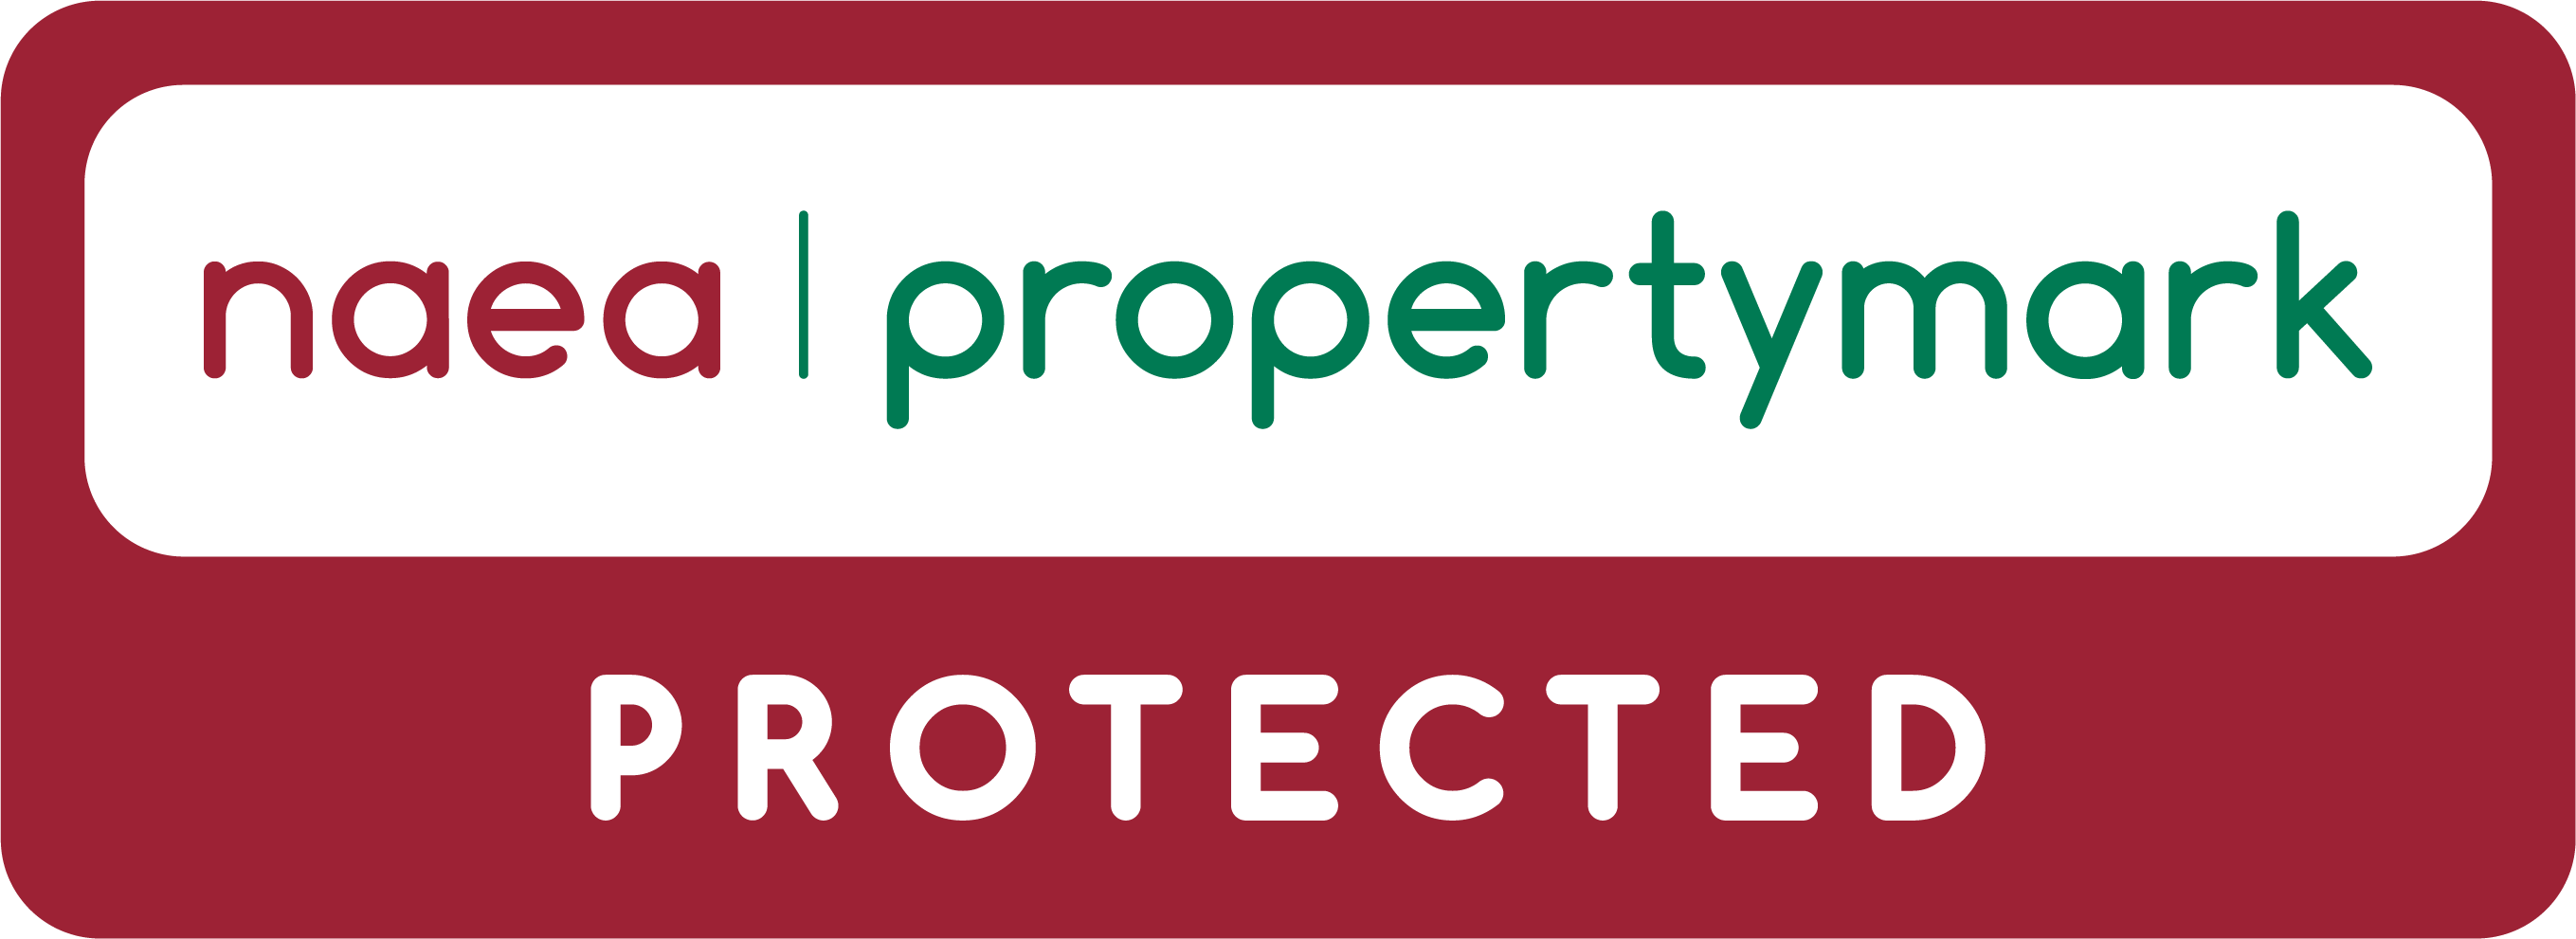 NAEA Propertymark Protected (1)